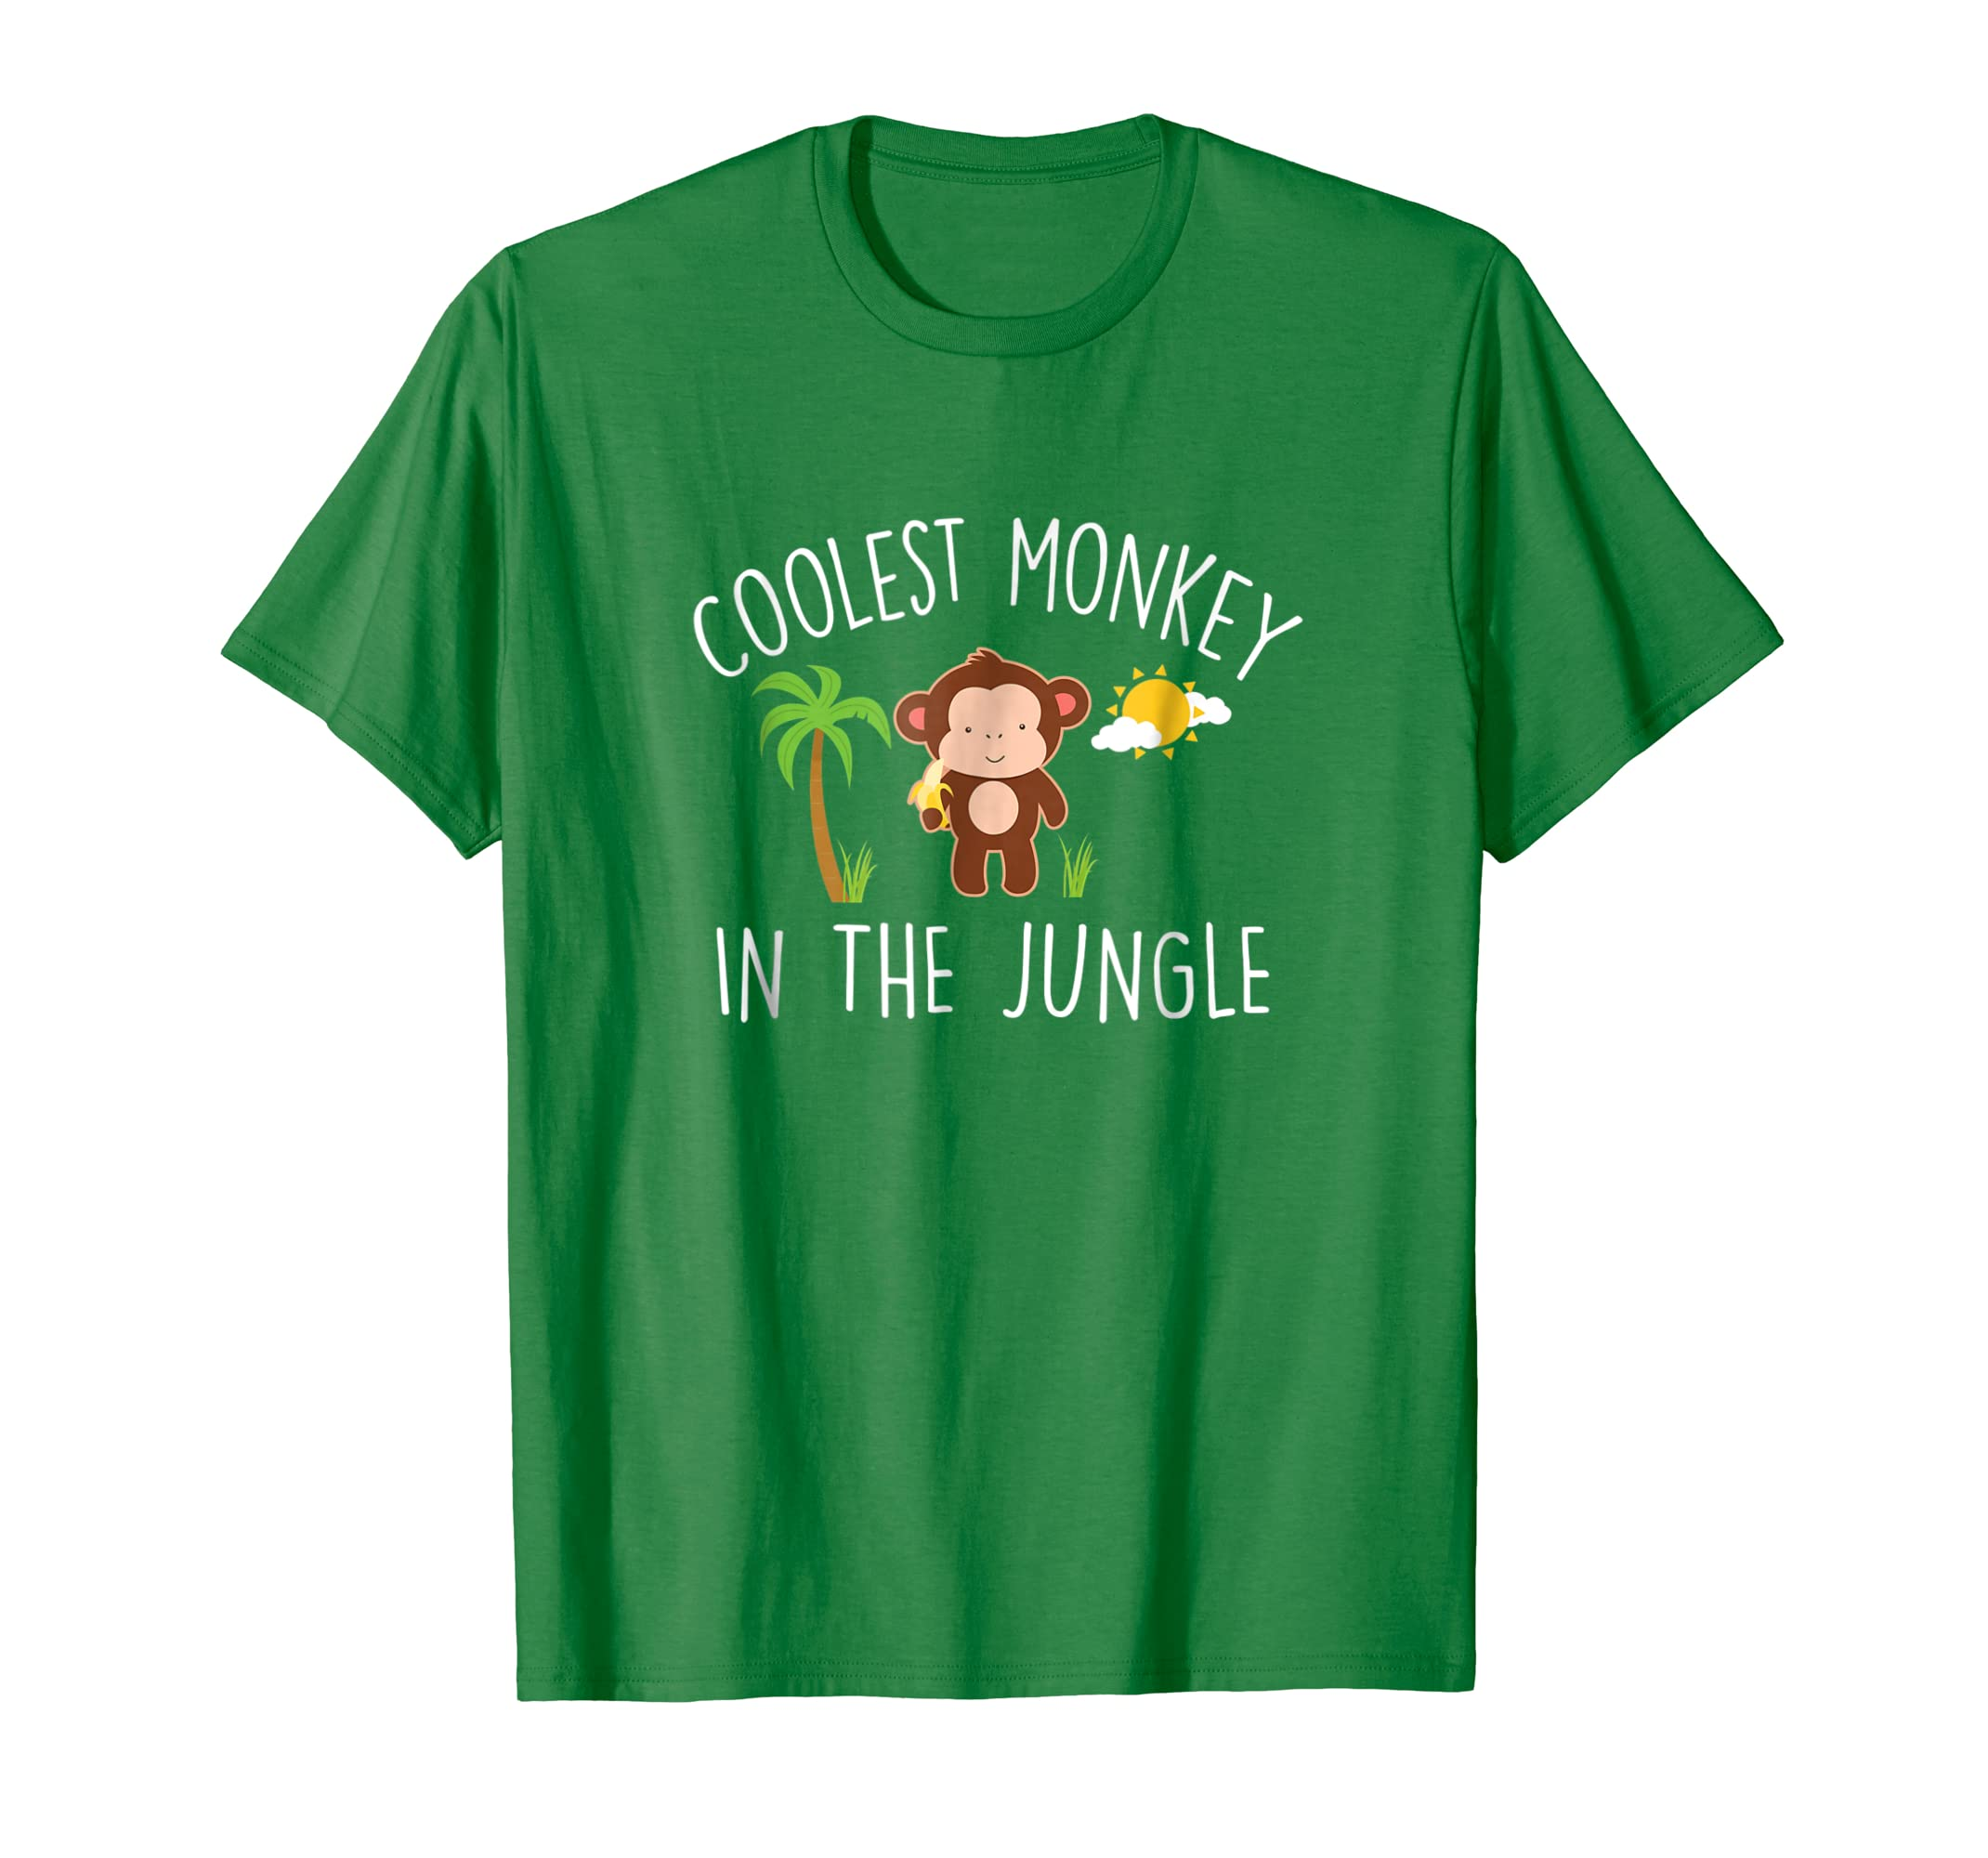 82682aa0 Amazon.com: Coolest Monkey in the Jungle T-Shirt Funny Kid Meme Tee:  Clothing